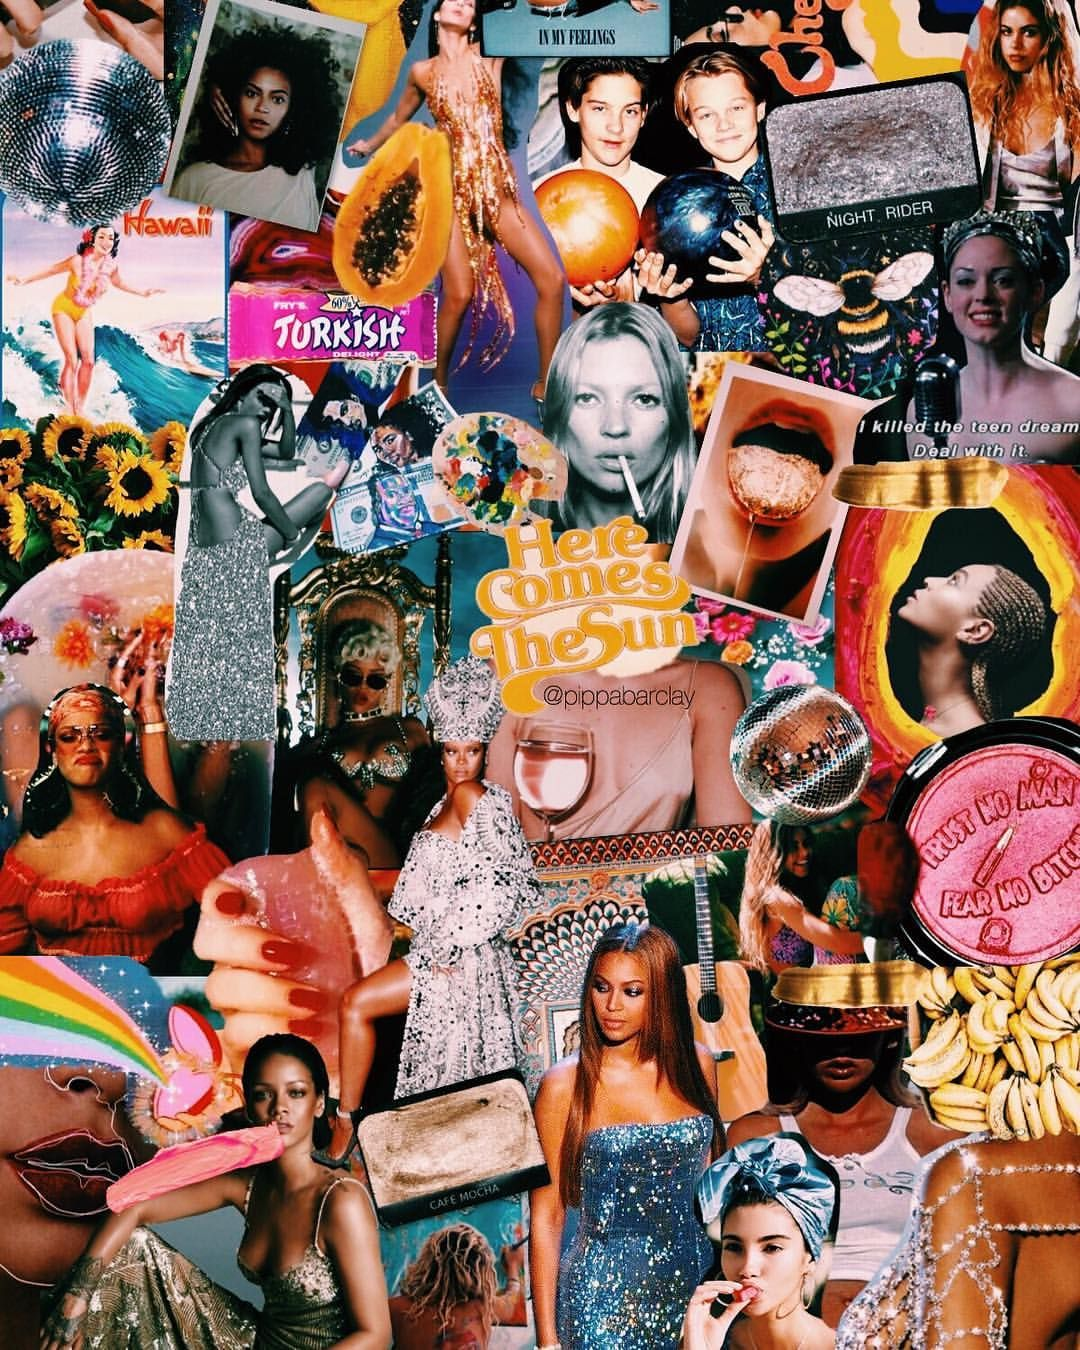 Collage Aesthetic collage, Magazine collage